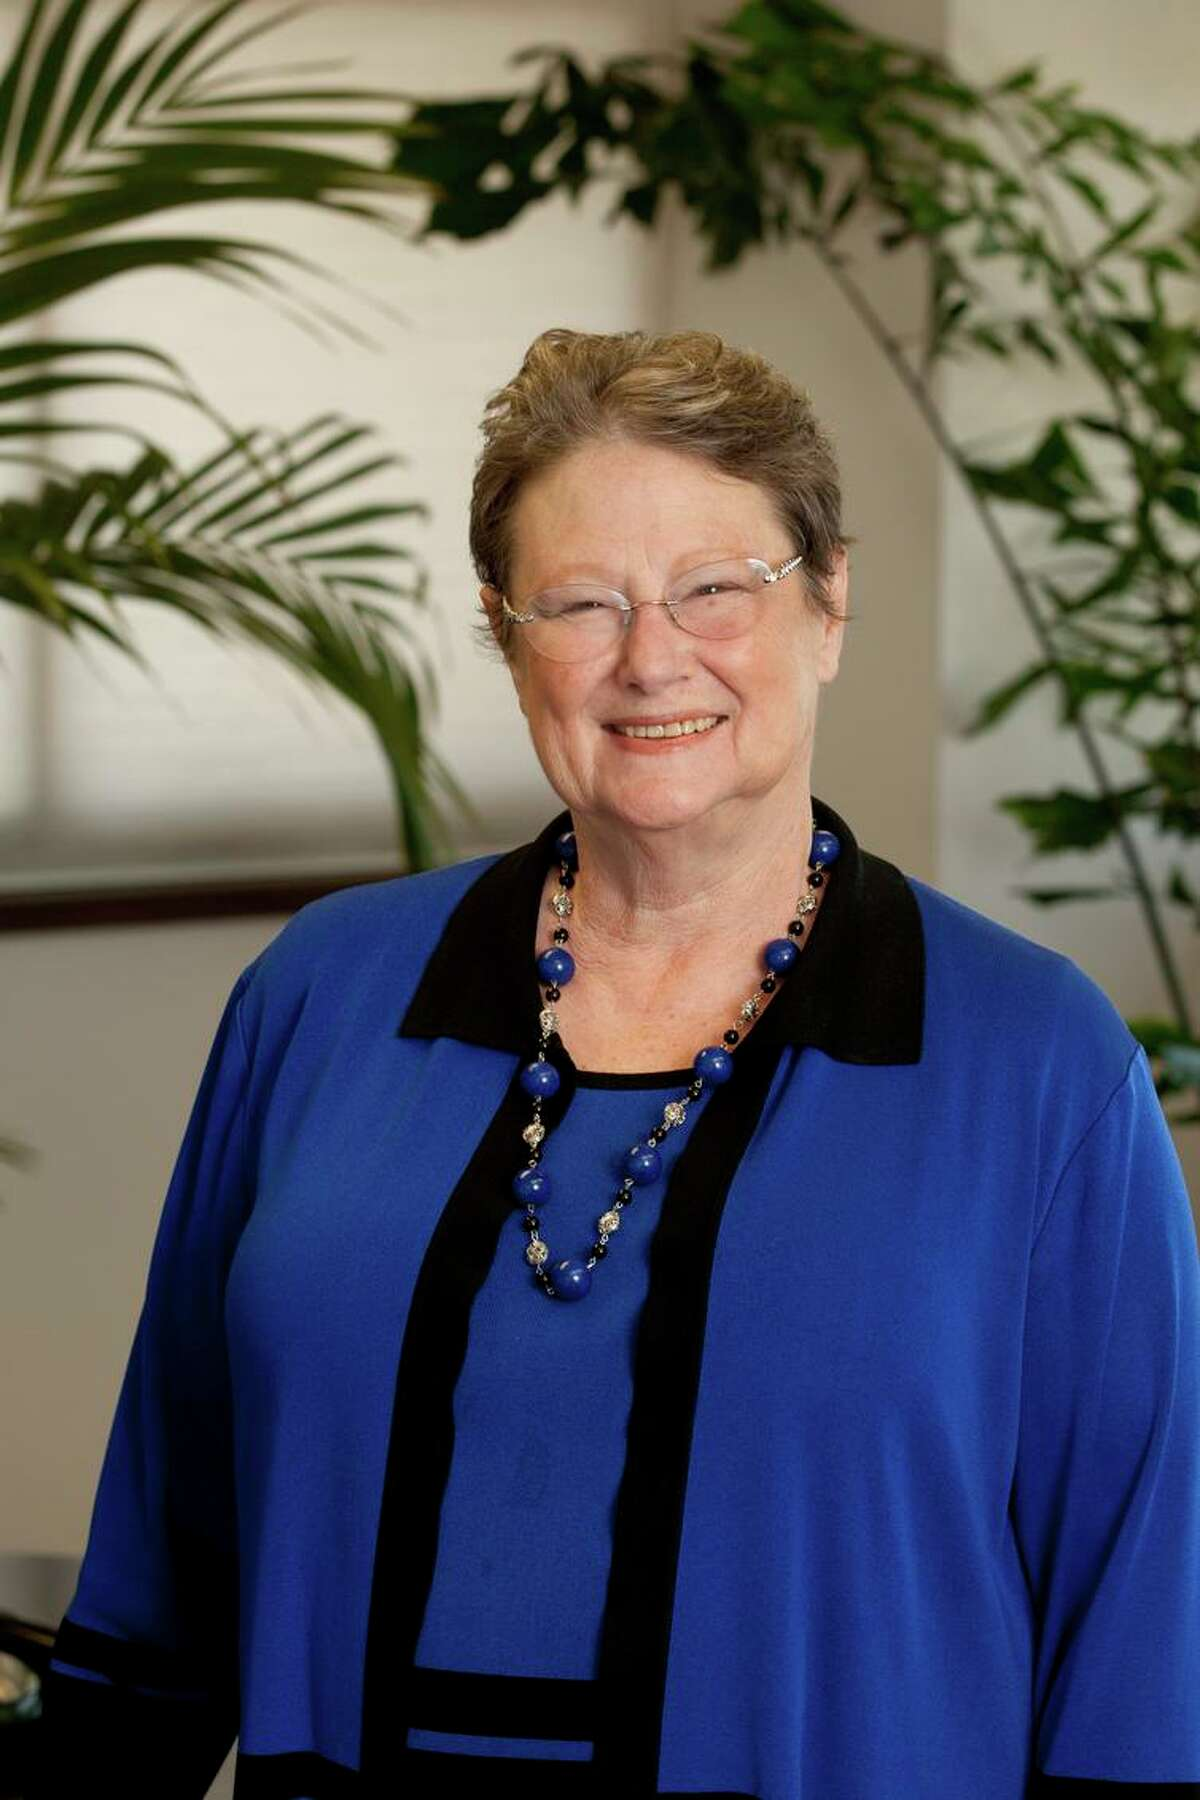 Sharon Diaz led the transformation of a small, private nursing program into Samuel Merritt University, a selective health sciences institution with campuses in San Mateo and Sacramento as well as Oakland and a $49 million endowment.